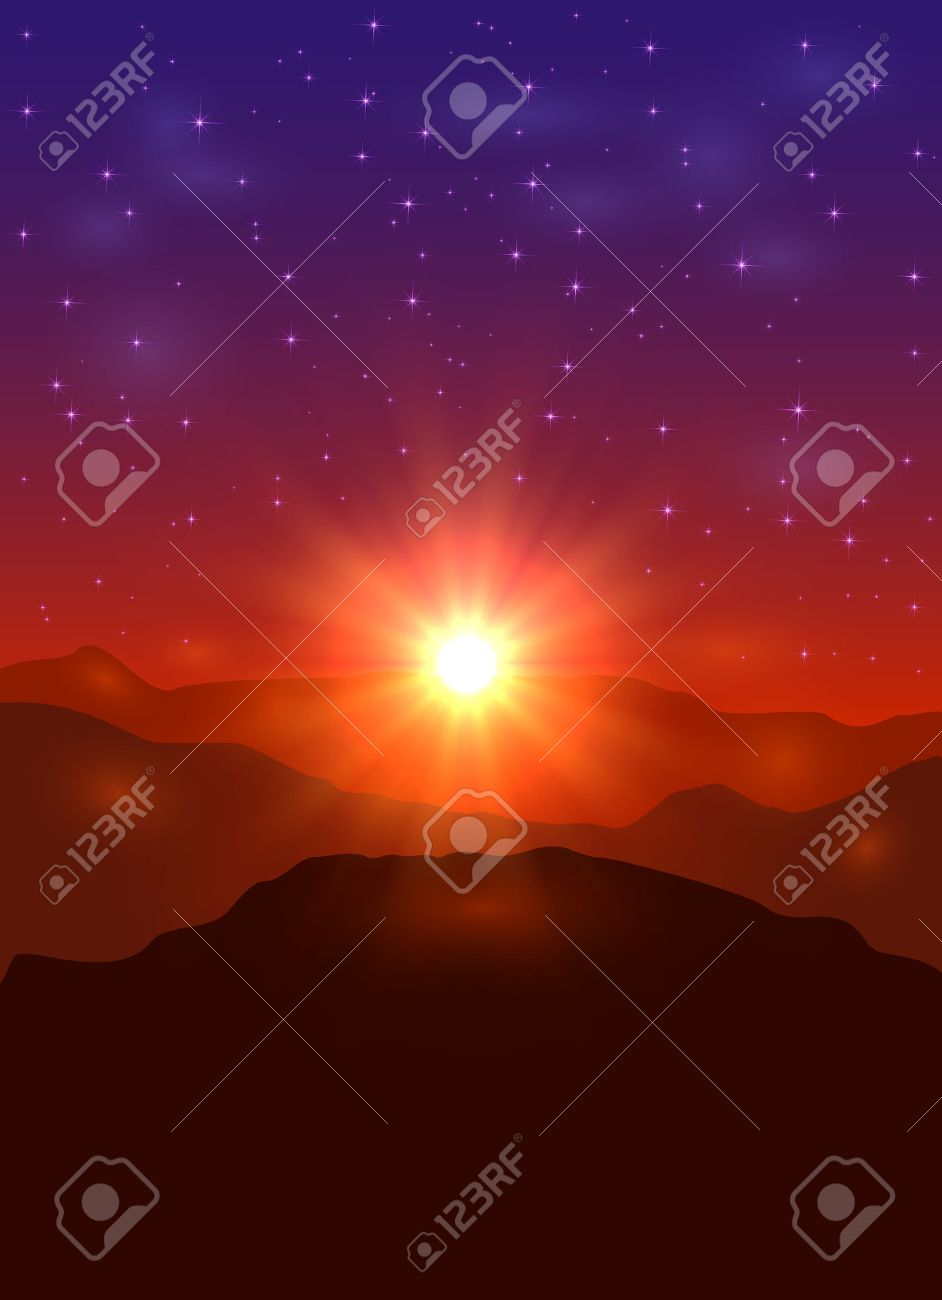 Beautiful landscape with sun and stars, sunrise in the mountains, illustration. - 46725910